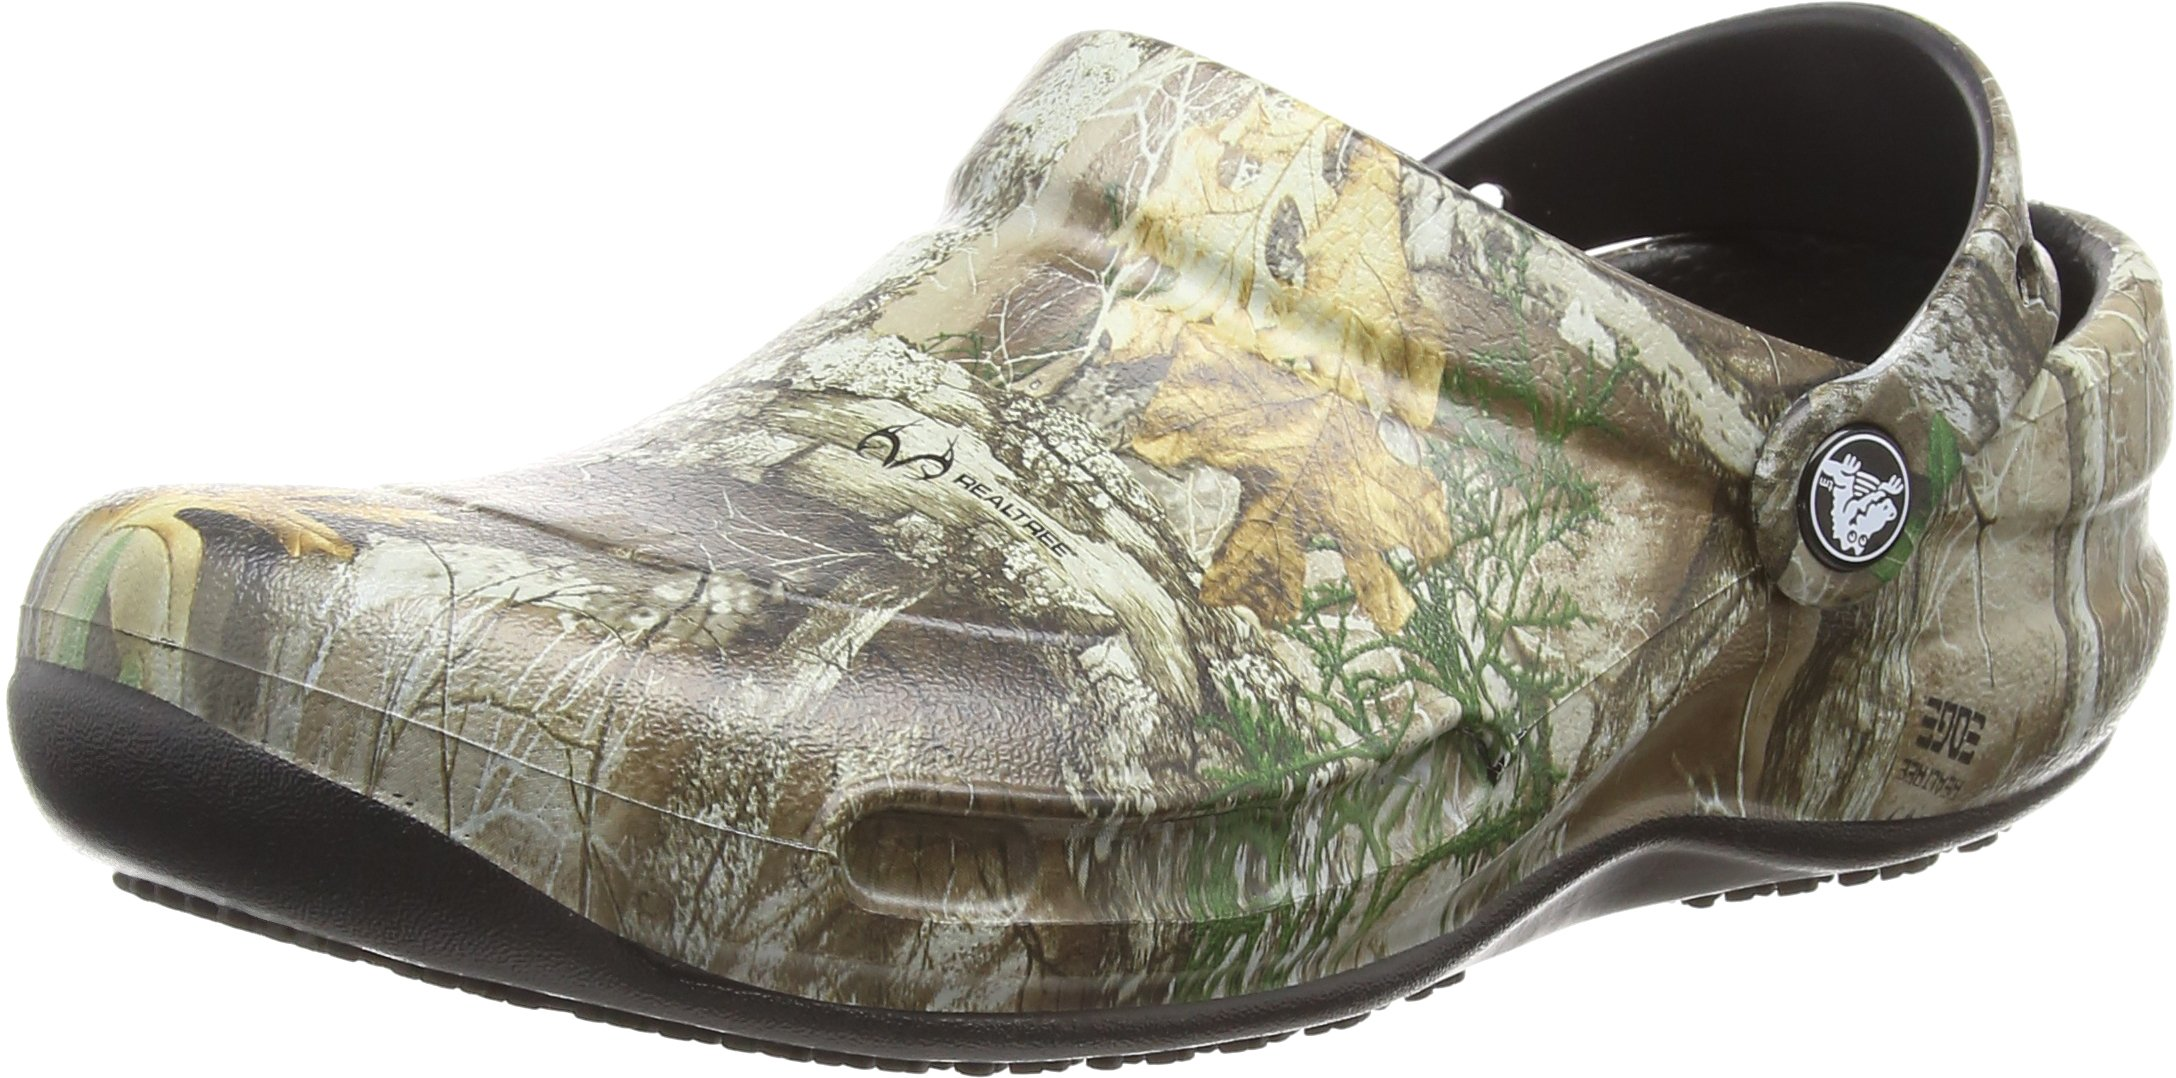 Crocs Bistro Realtree Edge Clog, Khaki/Black, 12 US Men / 14 US Women